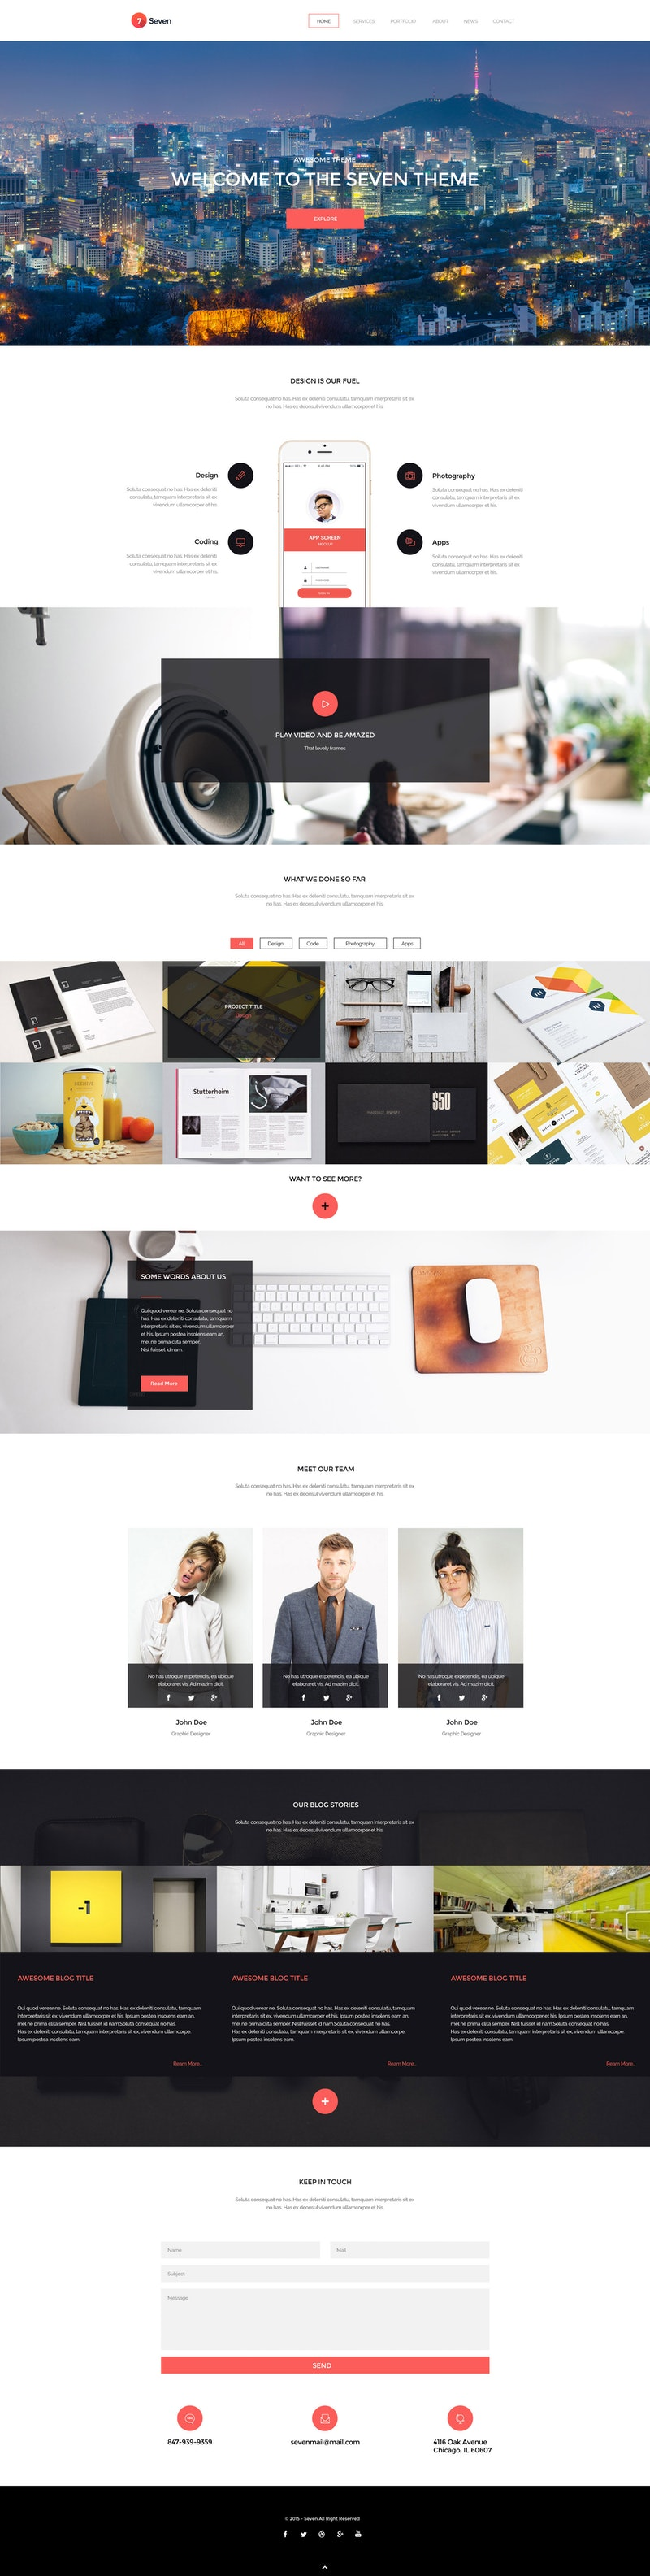 Seven - HTML Single Page Creative Portofolio Template preview